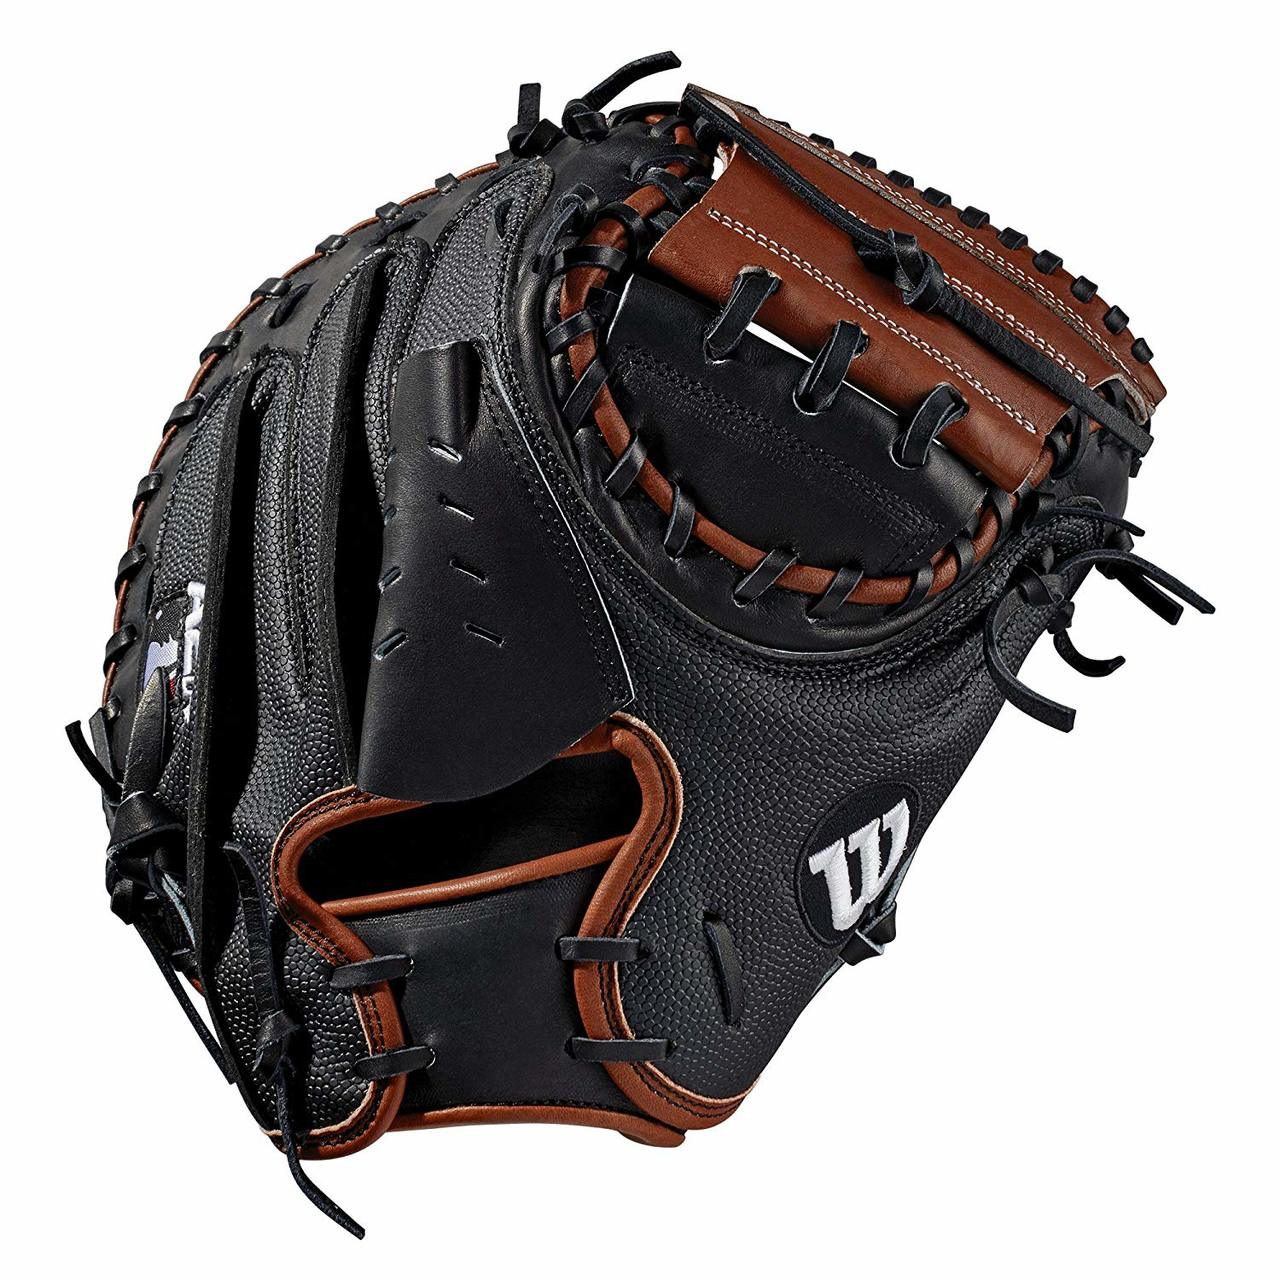 wilson-2019-a2k-baseball-catchers-mitt-33-5-right-hand-throw WTA2KRB19M2SS-RightHandThrow Wilson 887768701864 Catchers model; half moon web Black SuperSkin twice as strong as